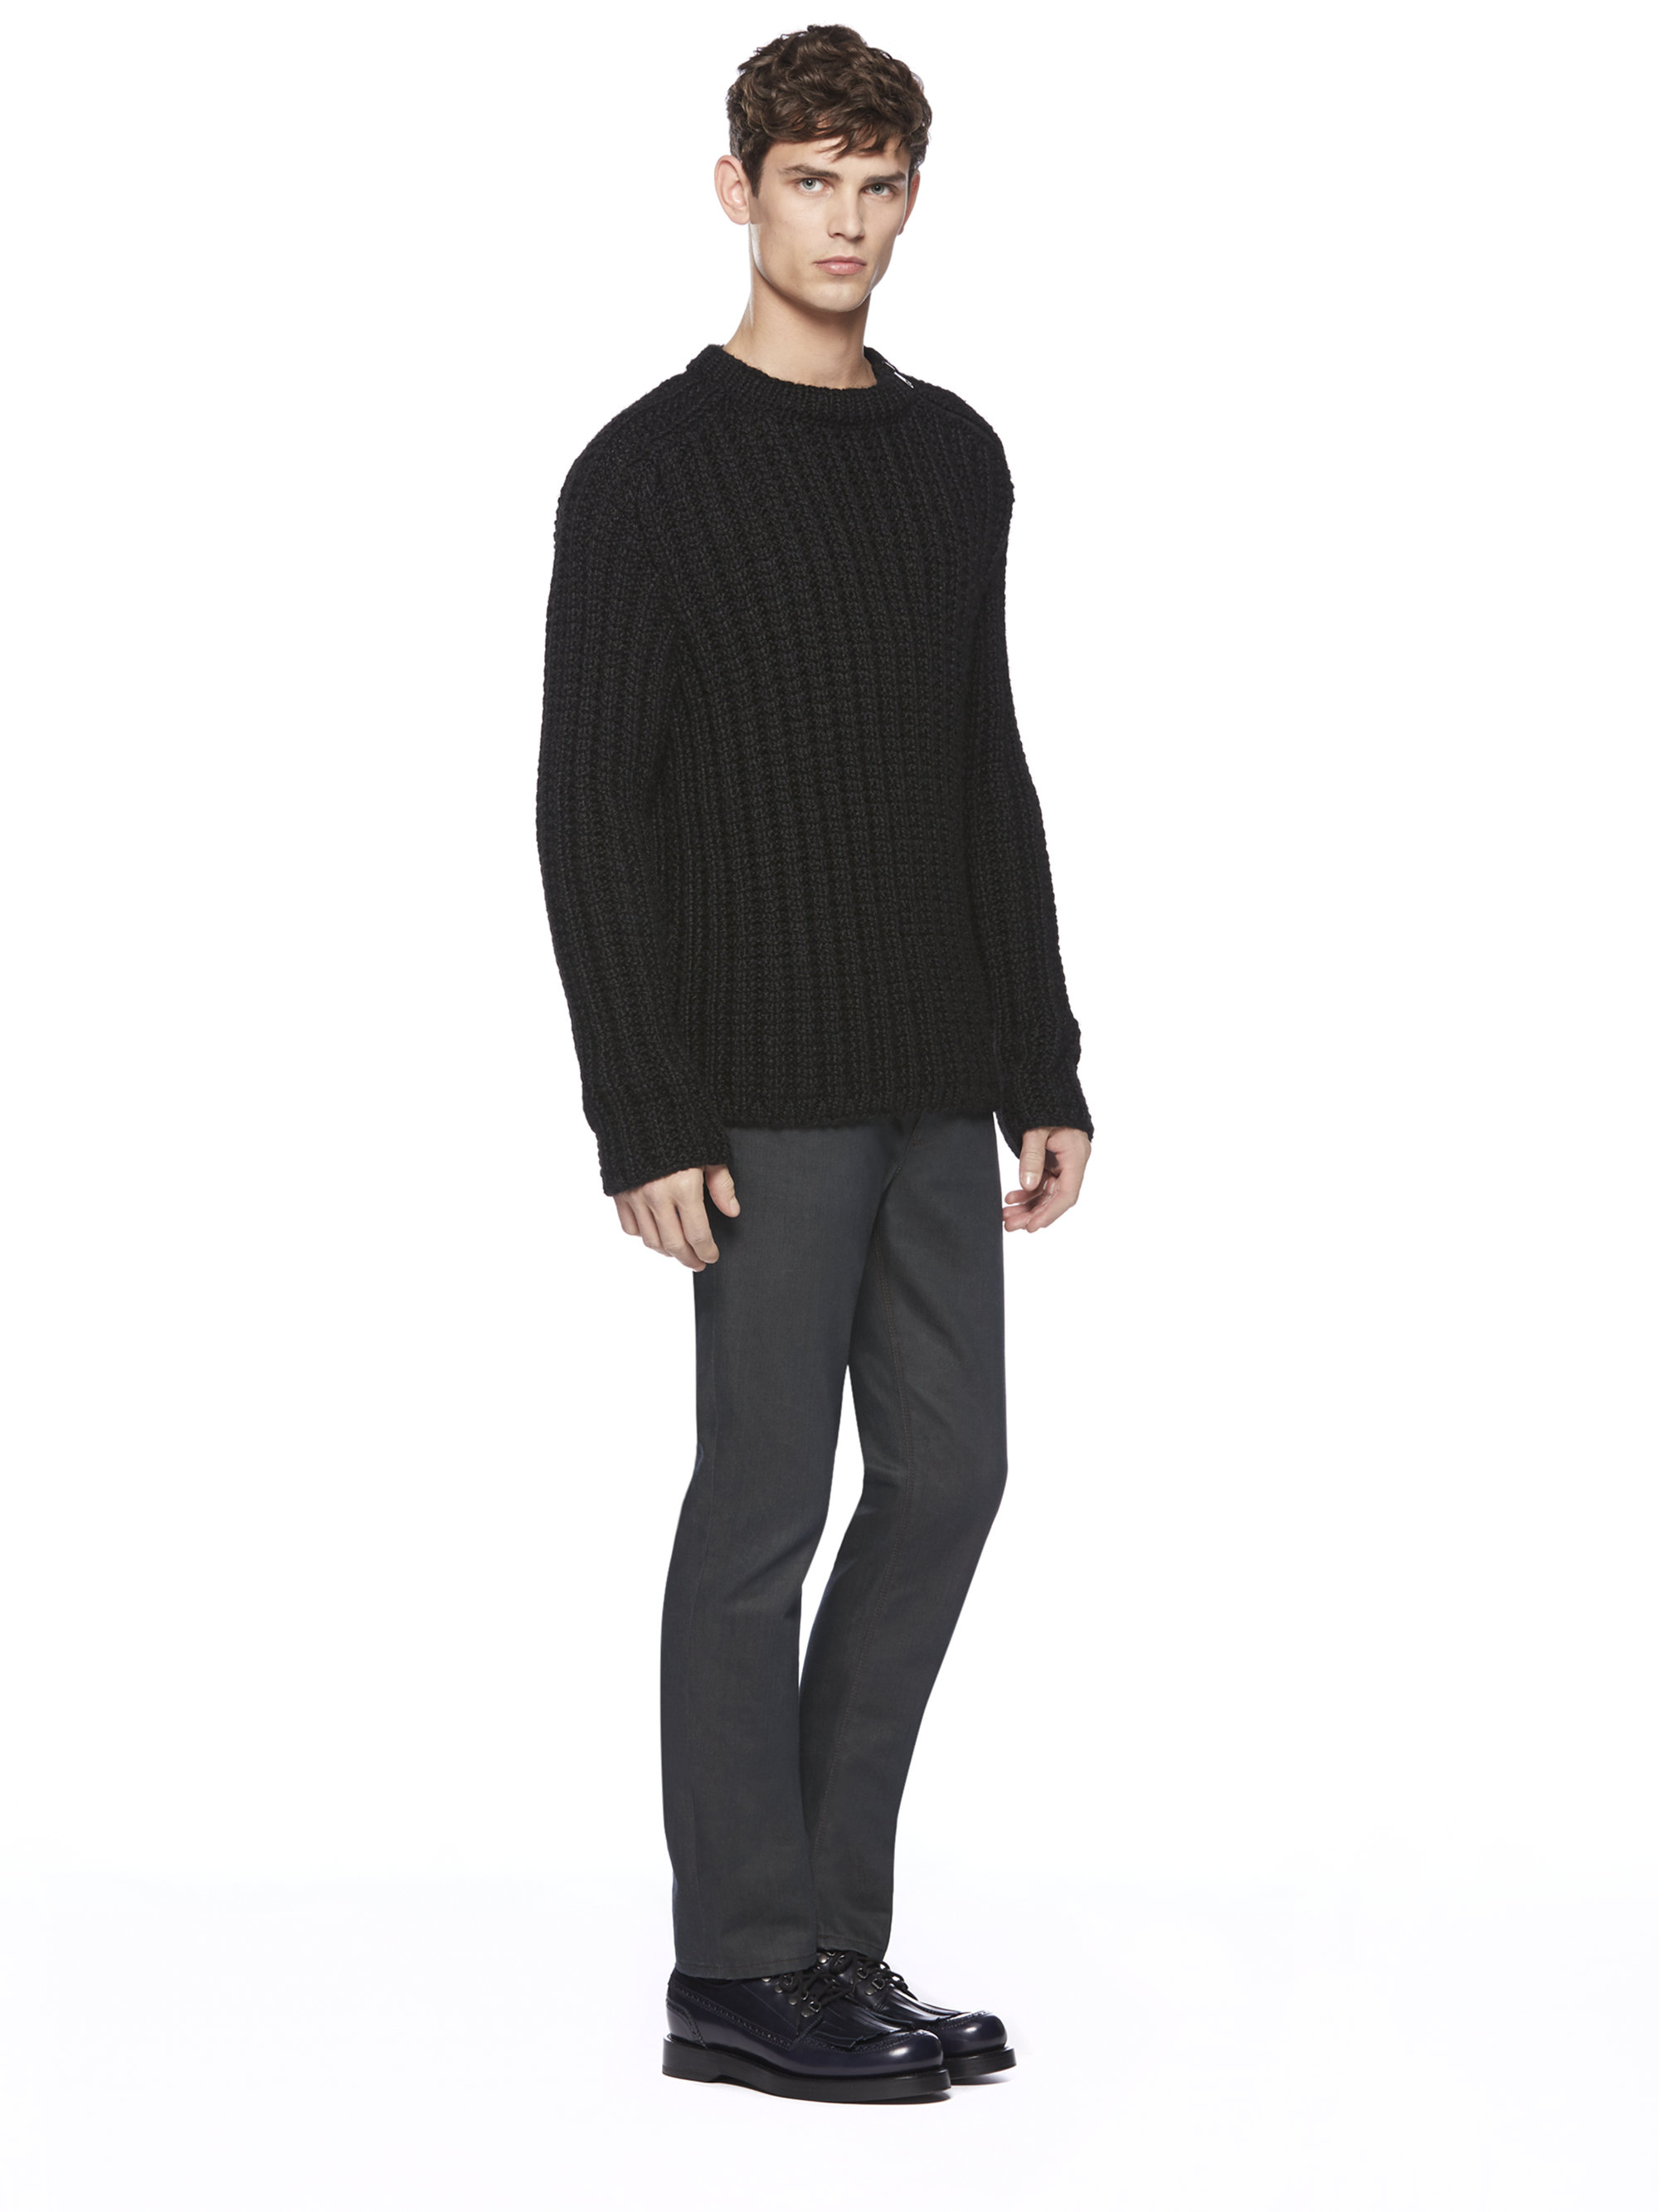 angora men Find great deals on ebay for mens angora sweater shop with confidence.